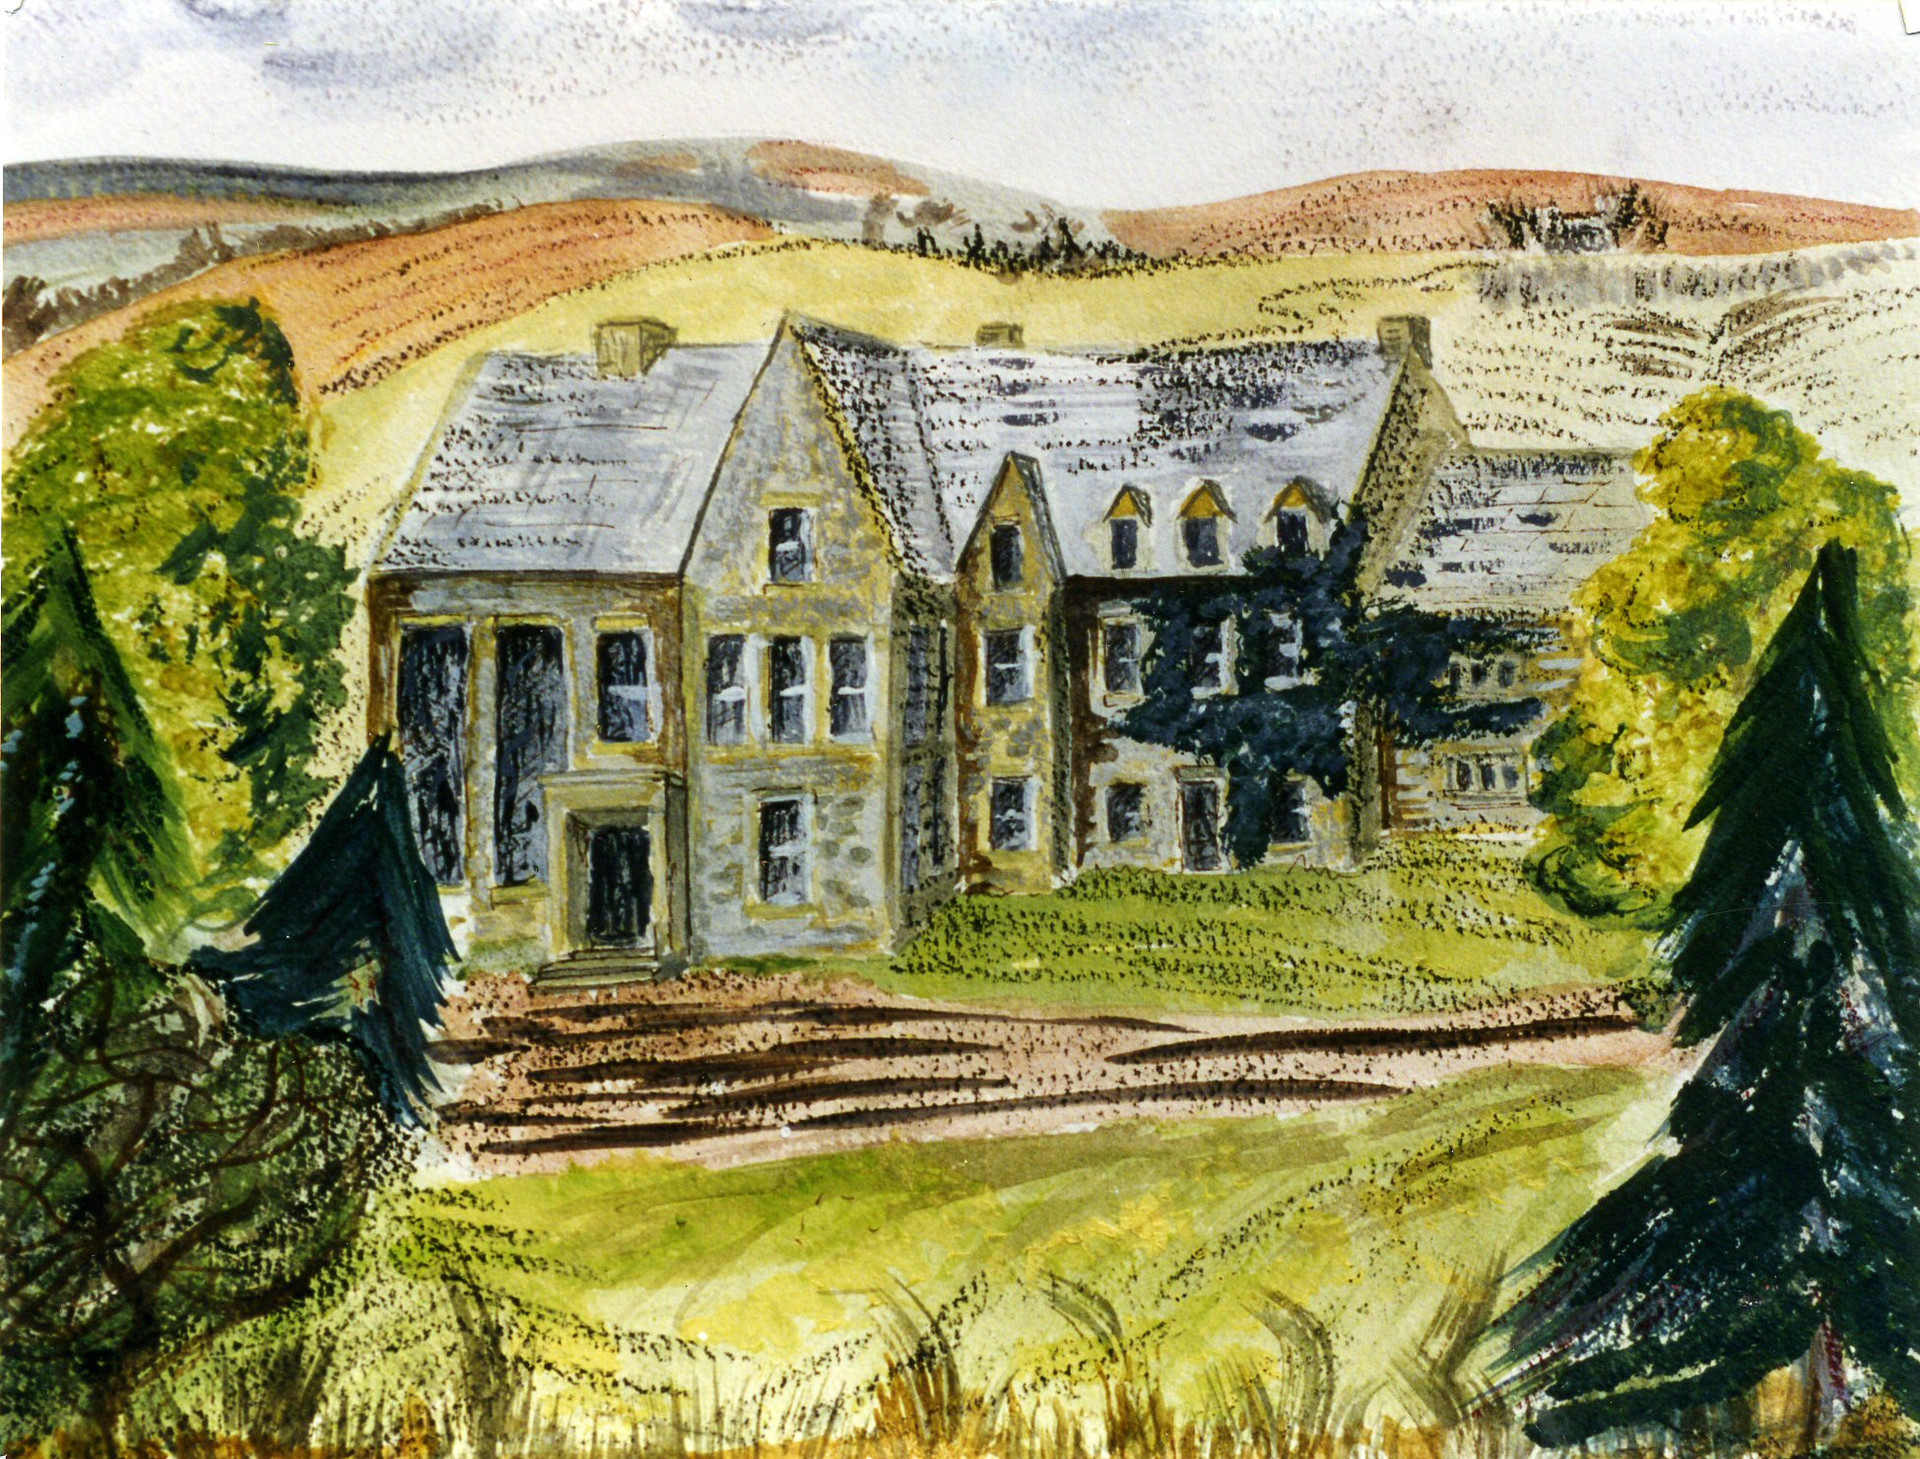 'Kidstones School', by pupil Janet Forsey 1940s. The school was housed in The Rookery buildings.